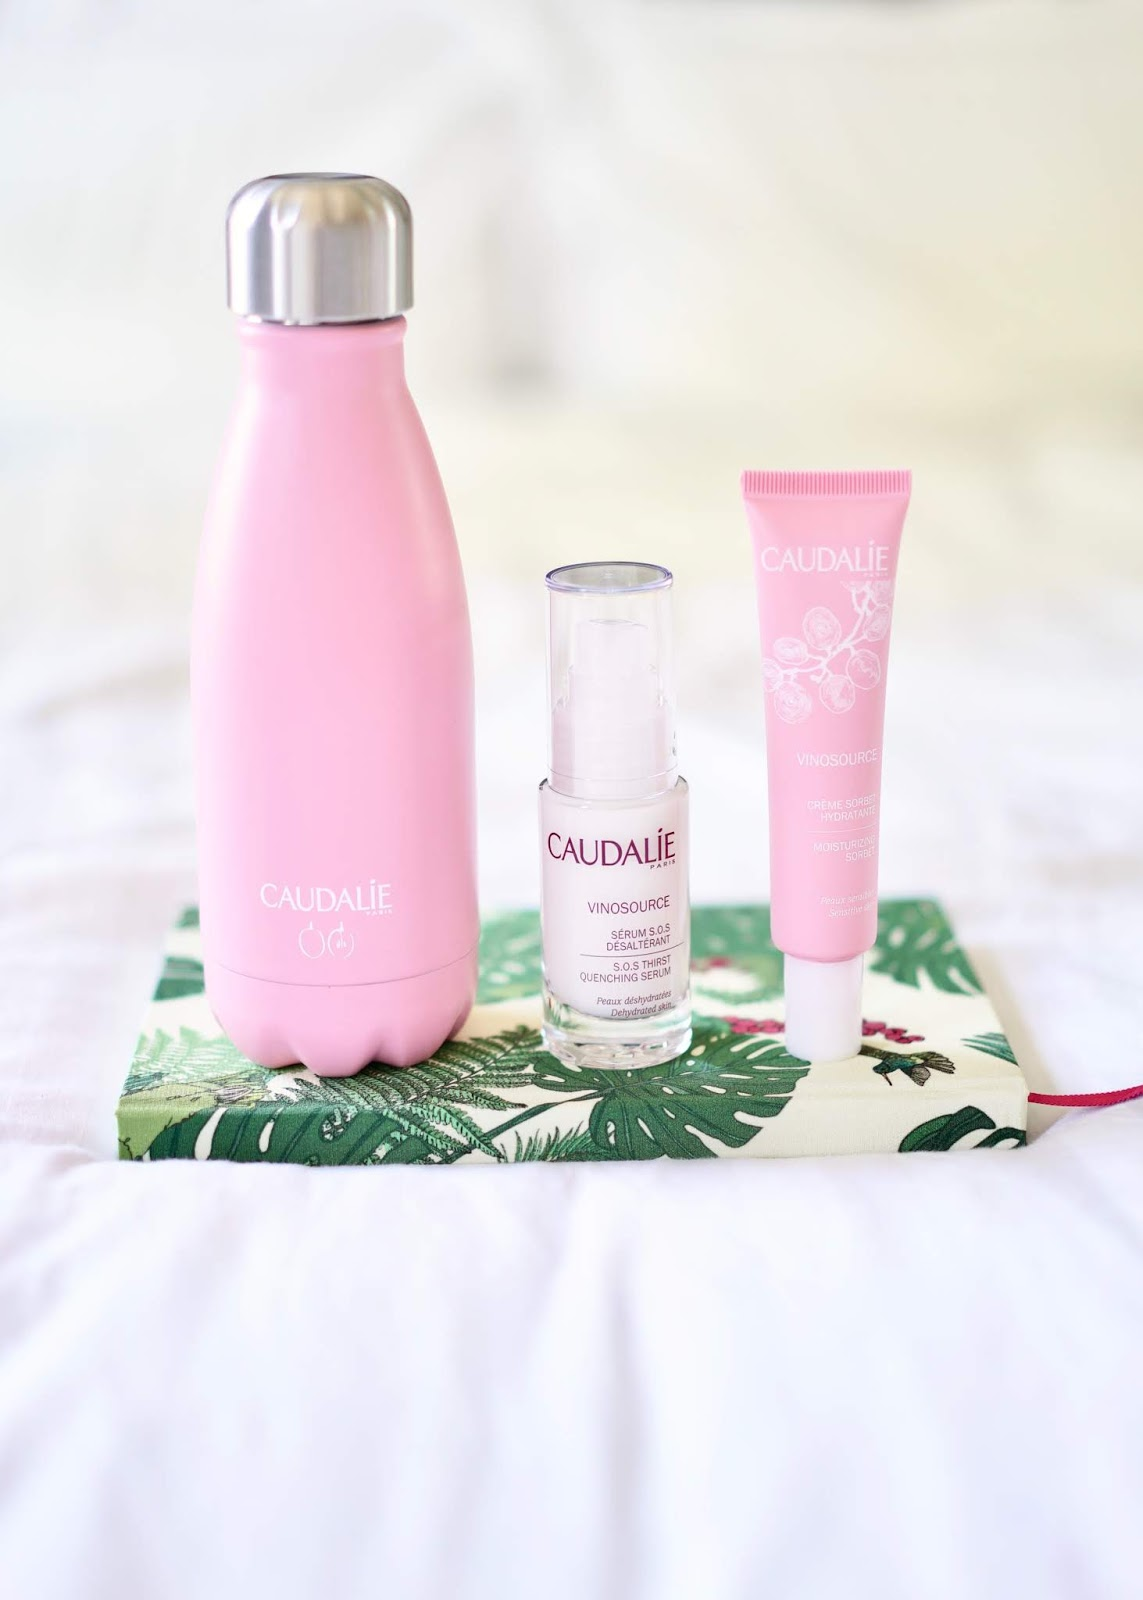 FREE ECO WATER BOTTLE OFFER FROM CAUDALIE